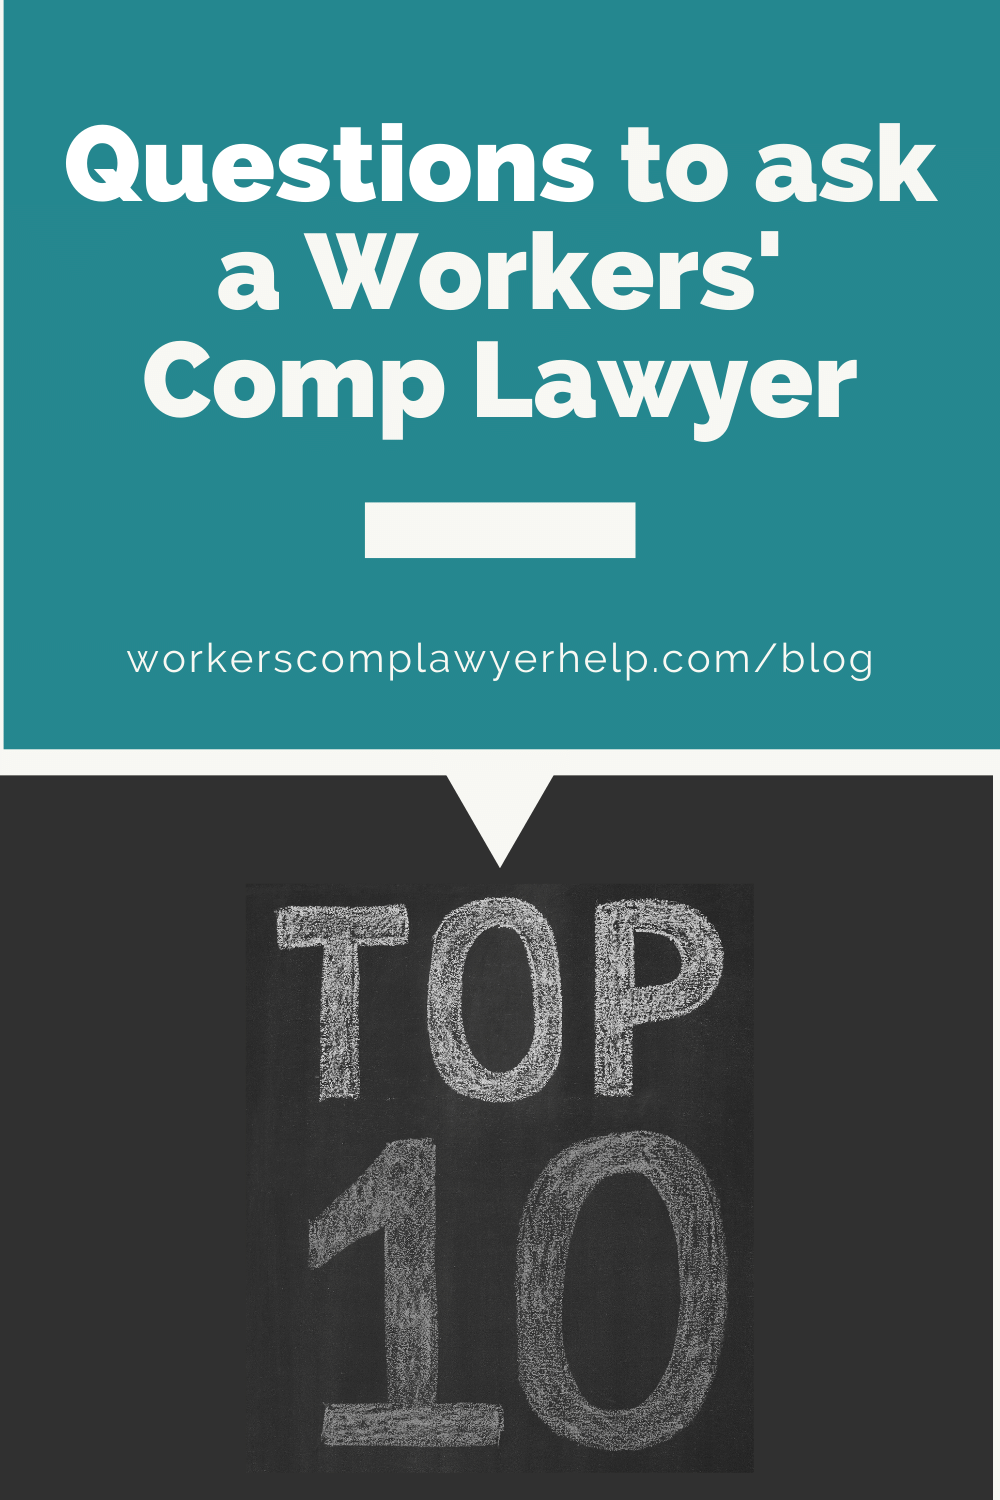 The Top 10 Questions to ask a workers' comp lawyer and how